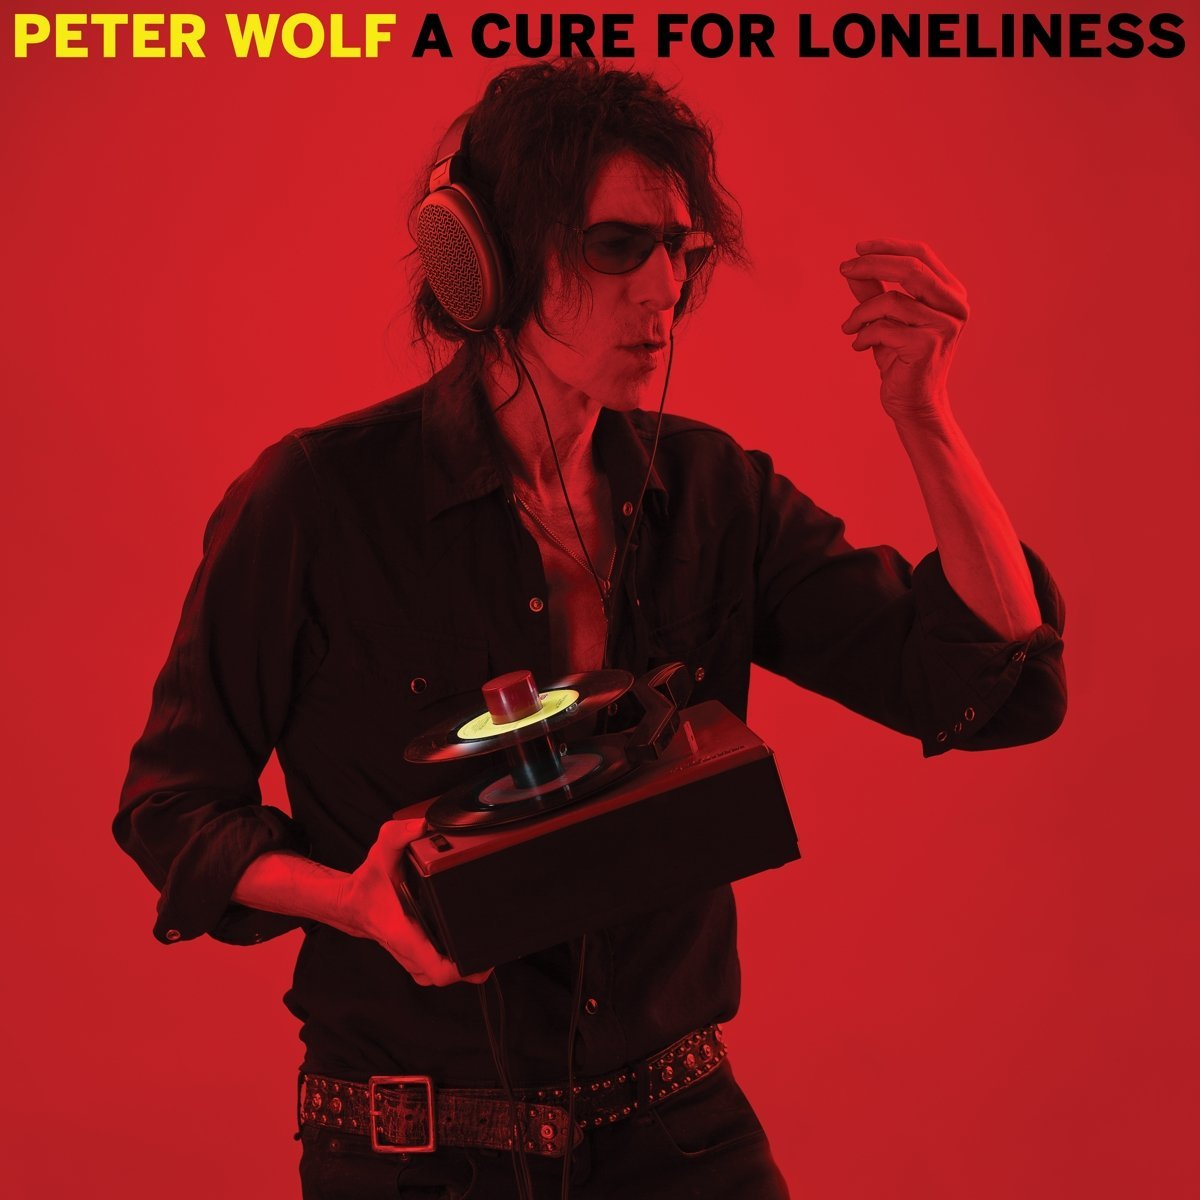 Peter Wolf: A Cure For Loneliness [Album Review]